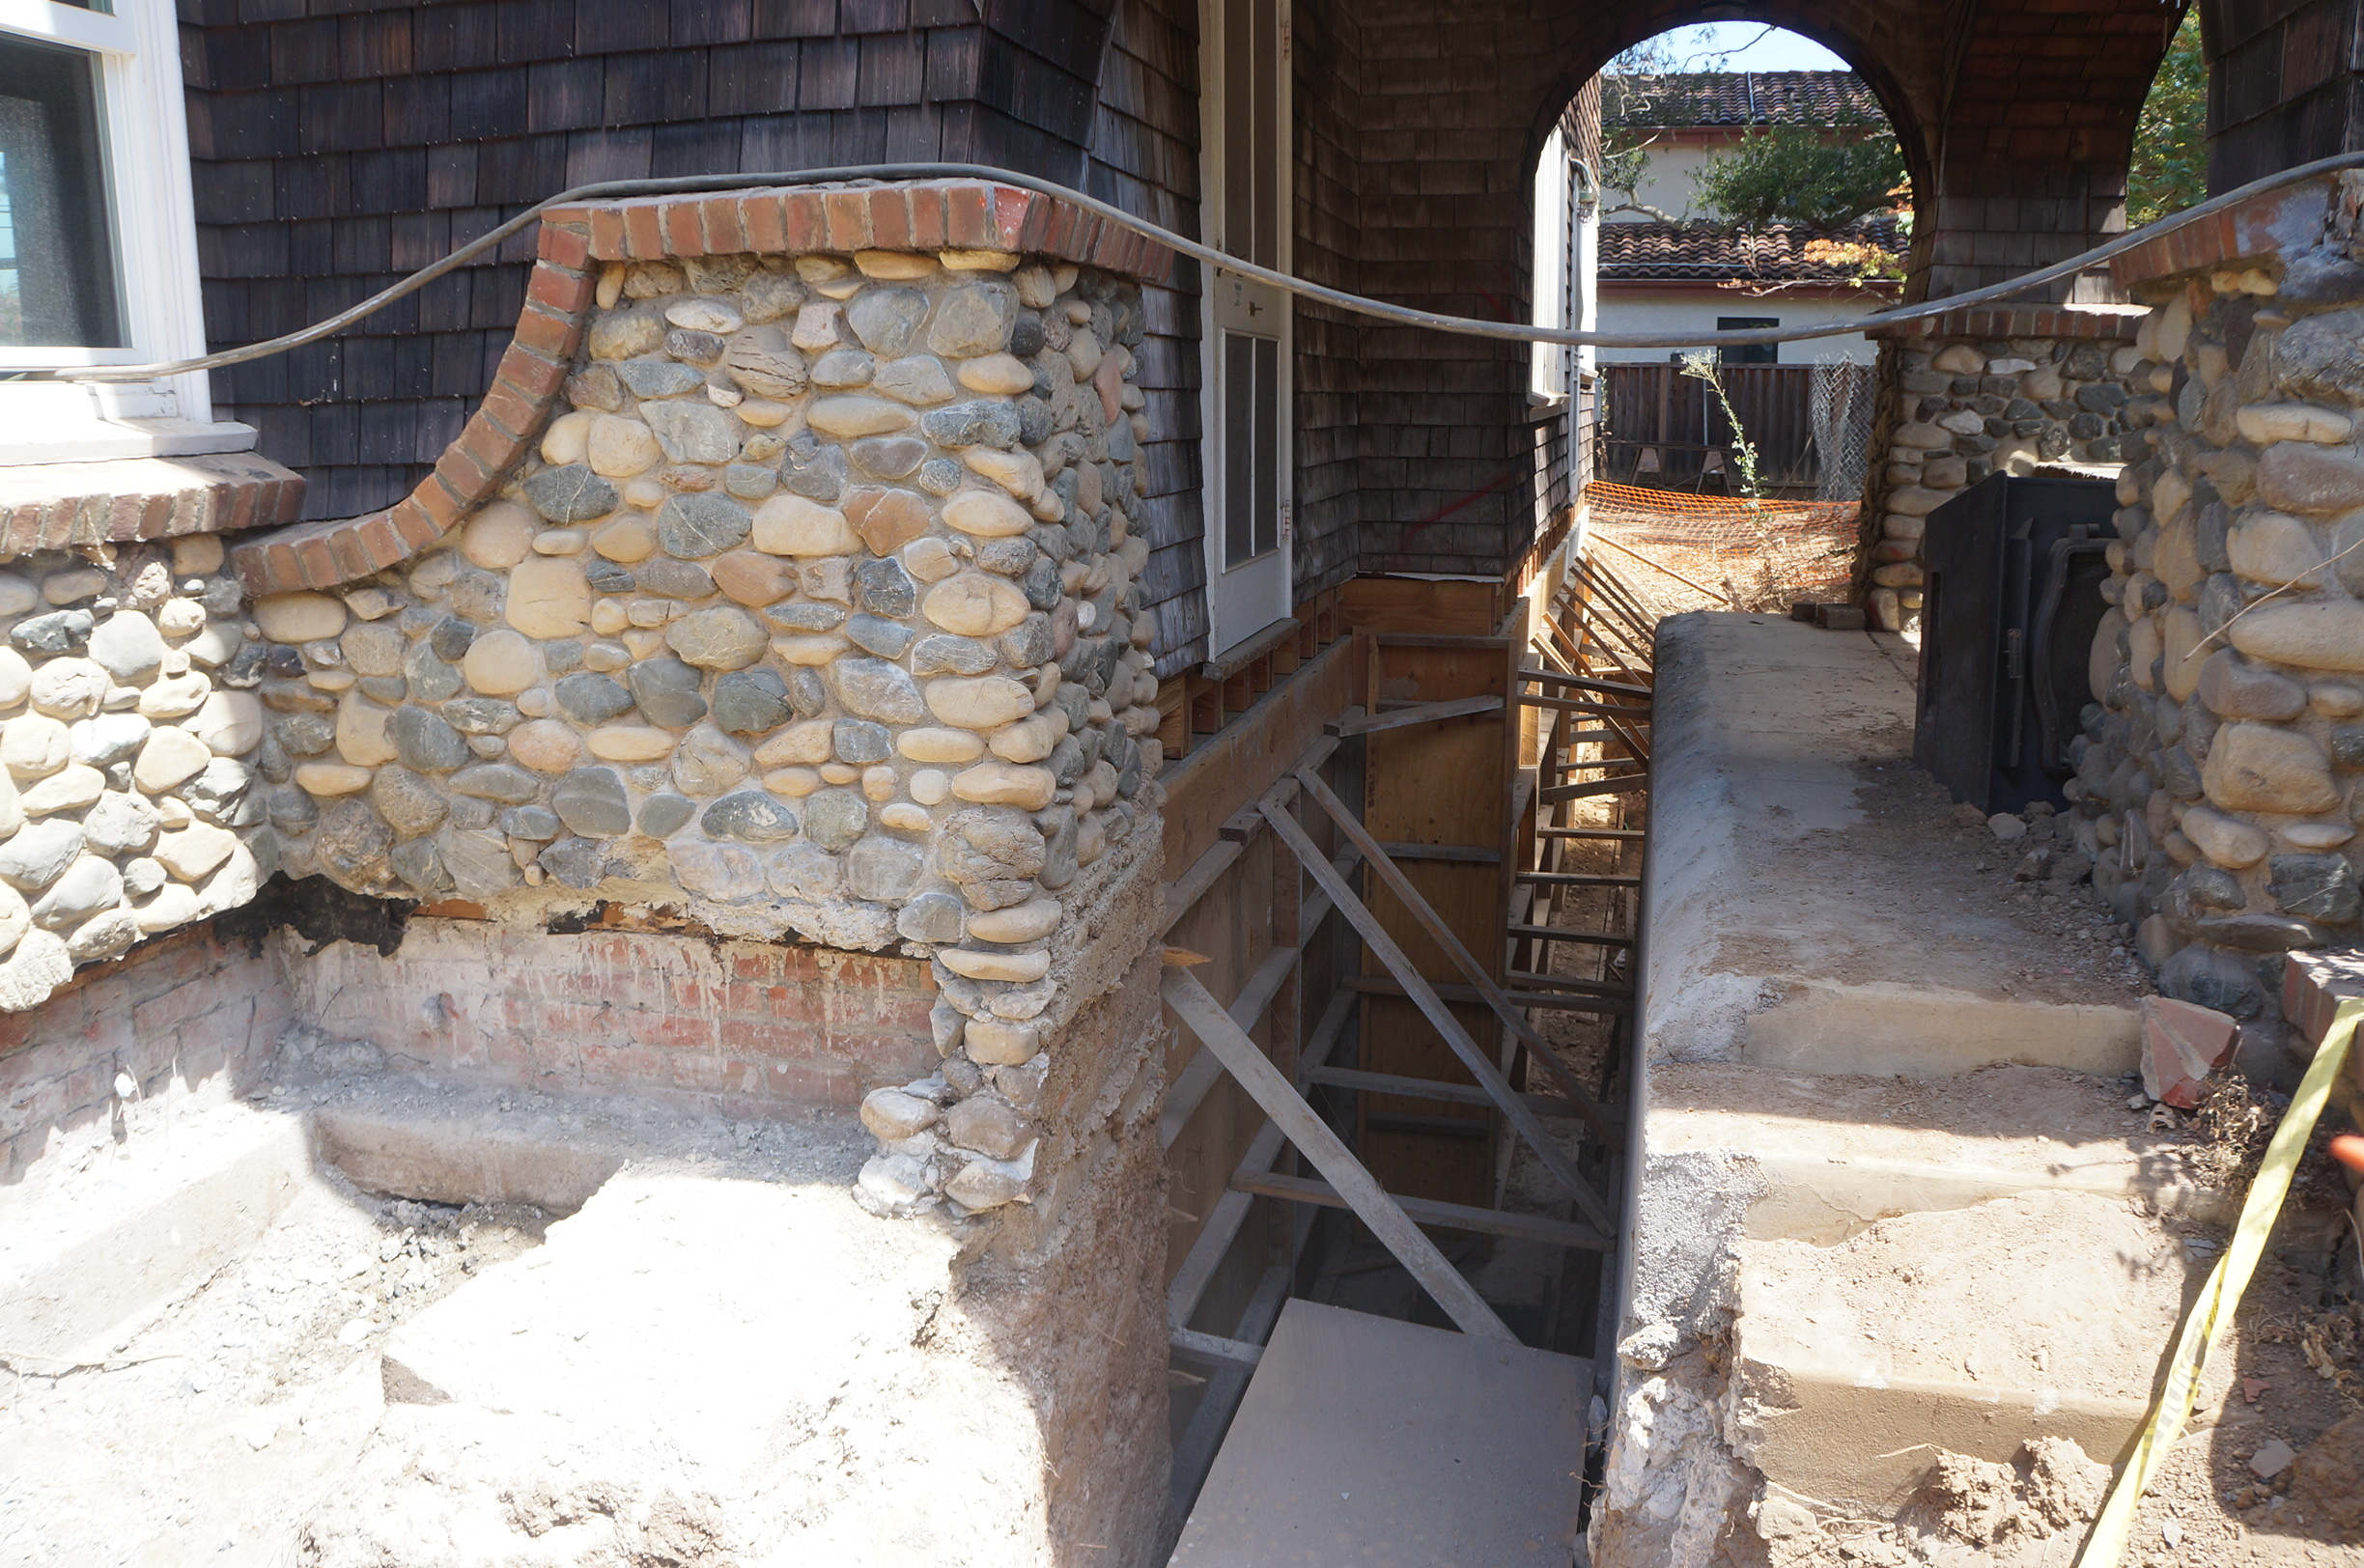 Details of the west façade during construction: the river rock has been salvaged and the concrete porch area excavated for new foundations.